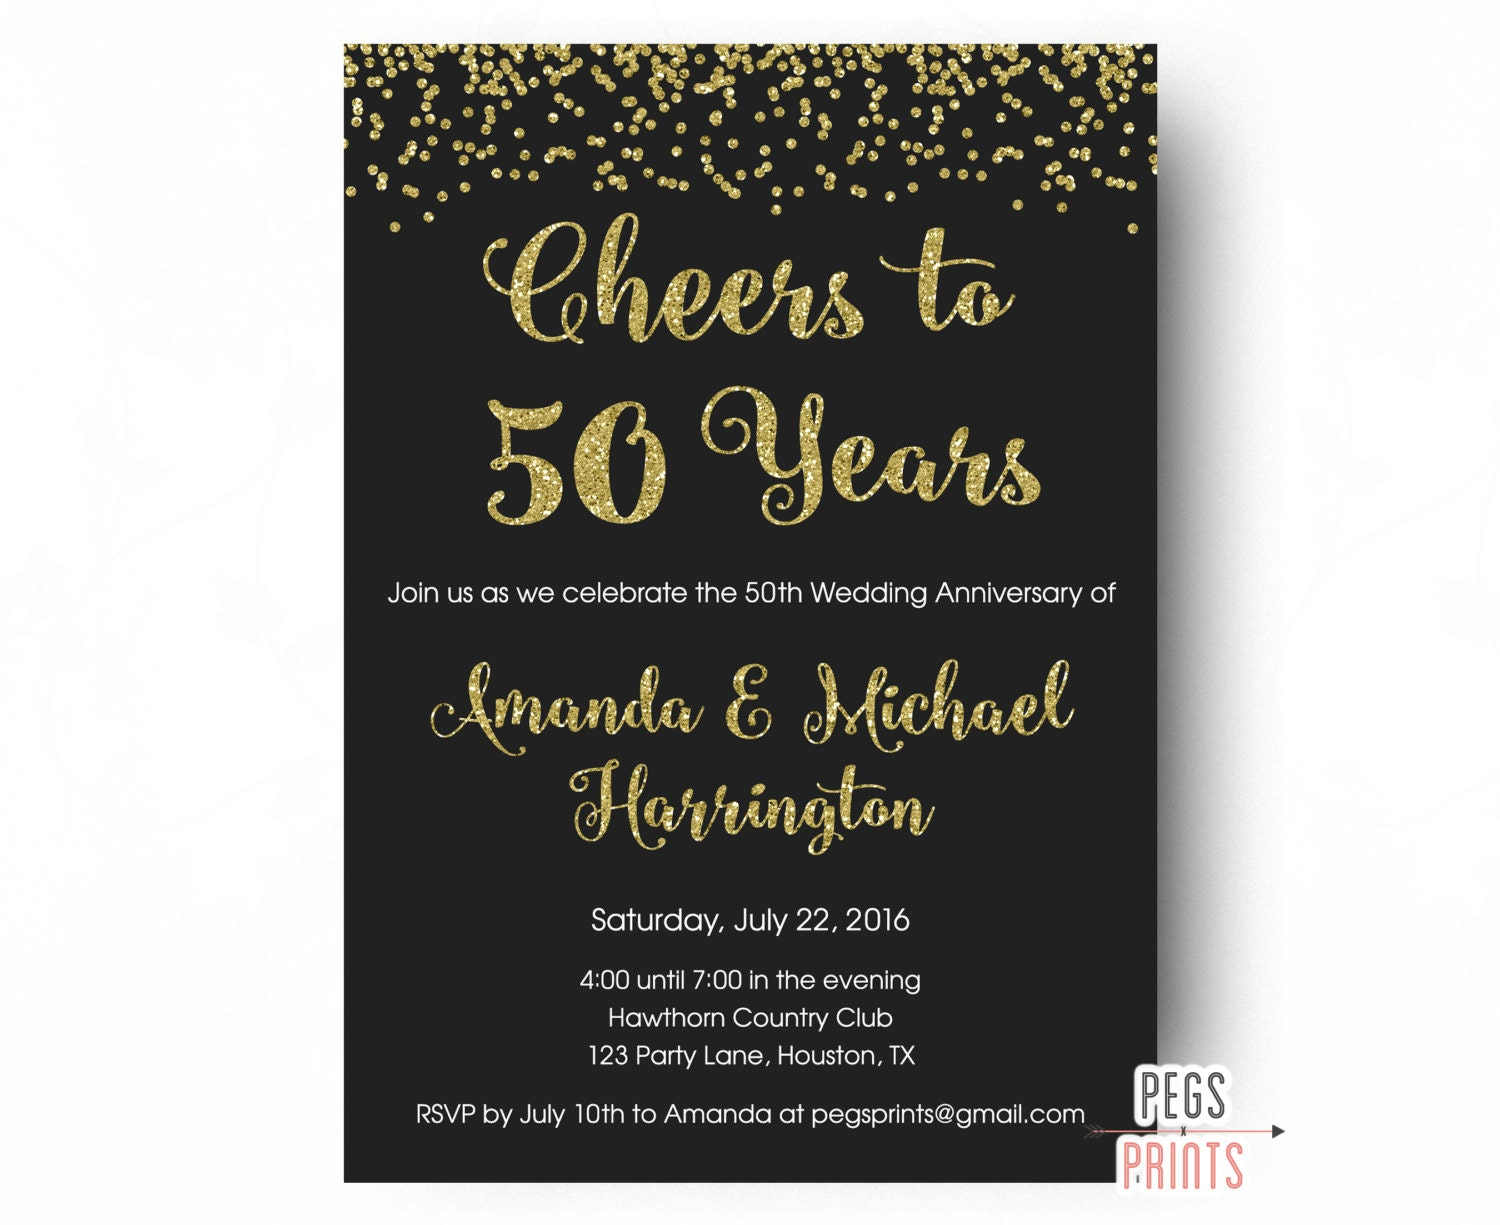 50th Wedding Anniversary Invitation Ideas: Cheers To 50 Years Invitation 50th Anniversary Invitation